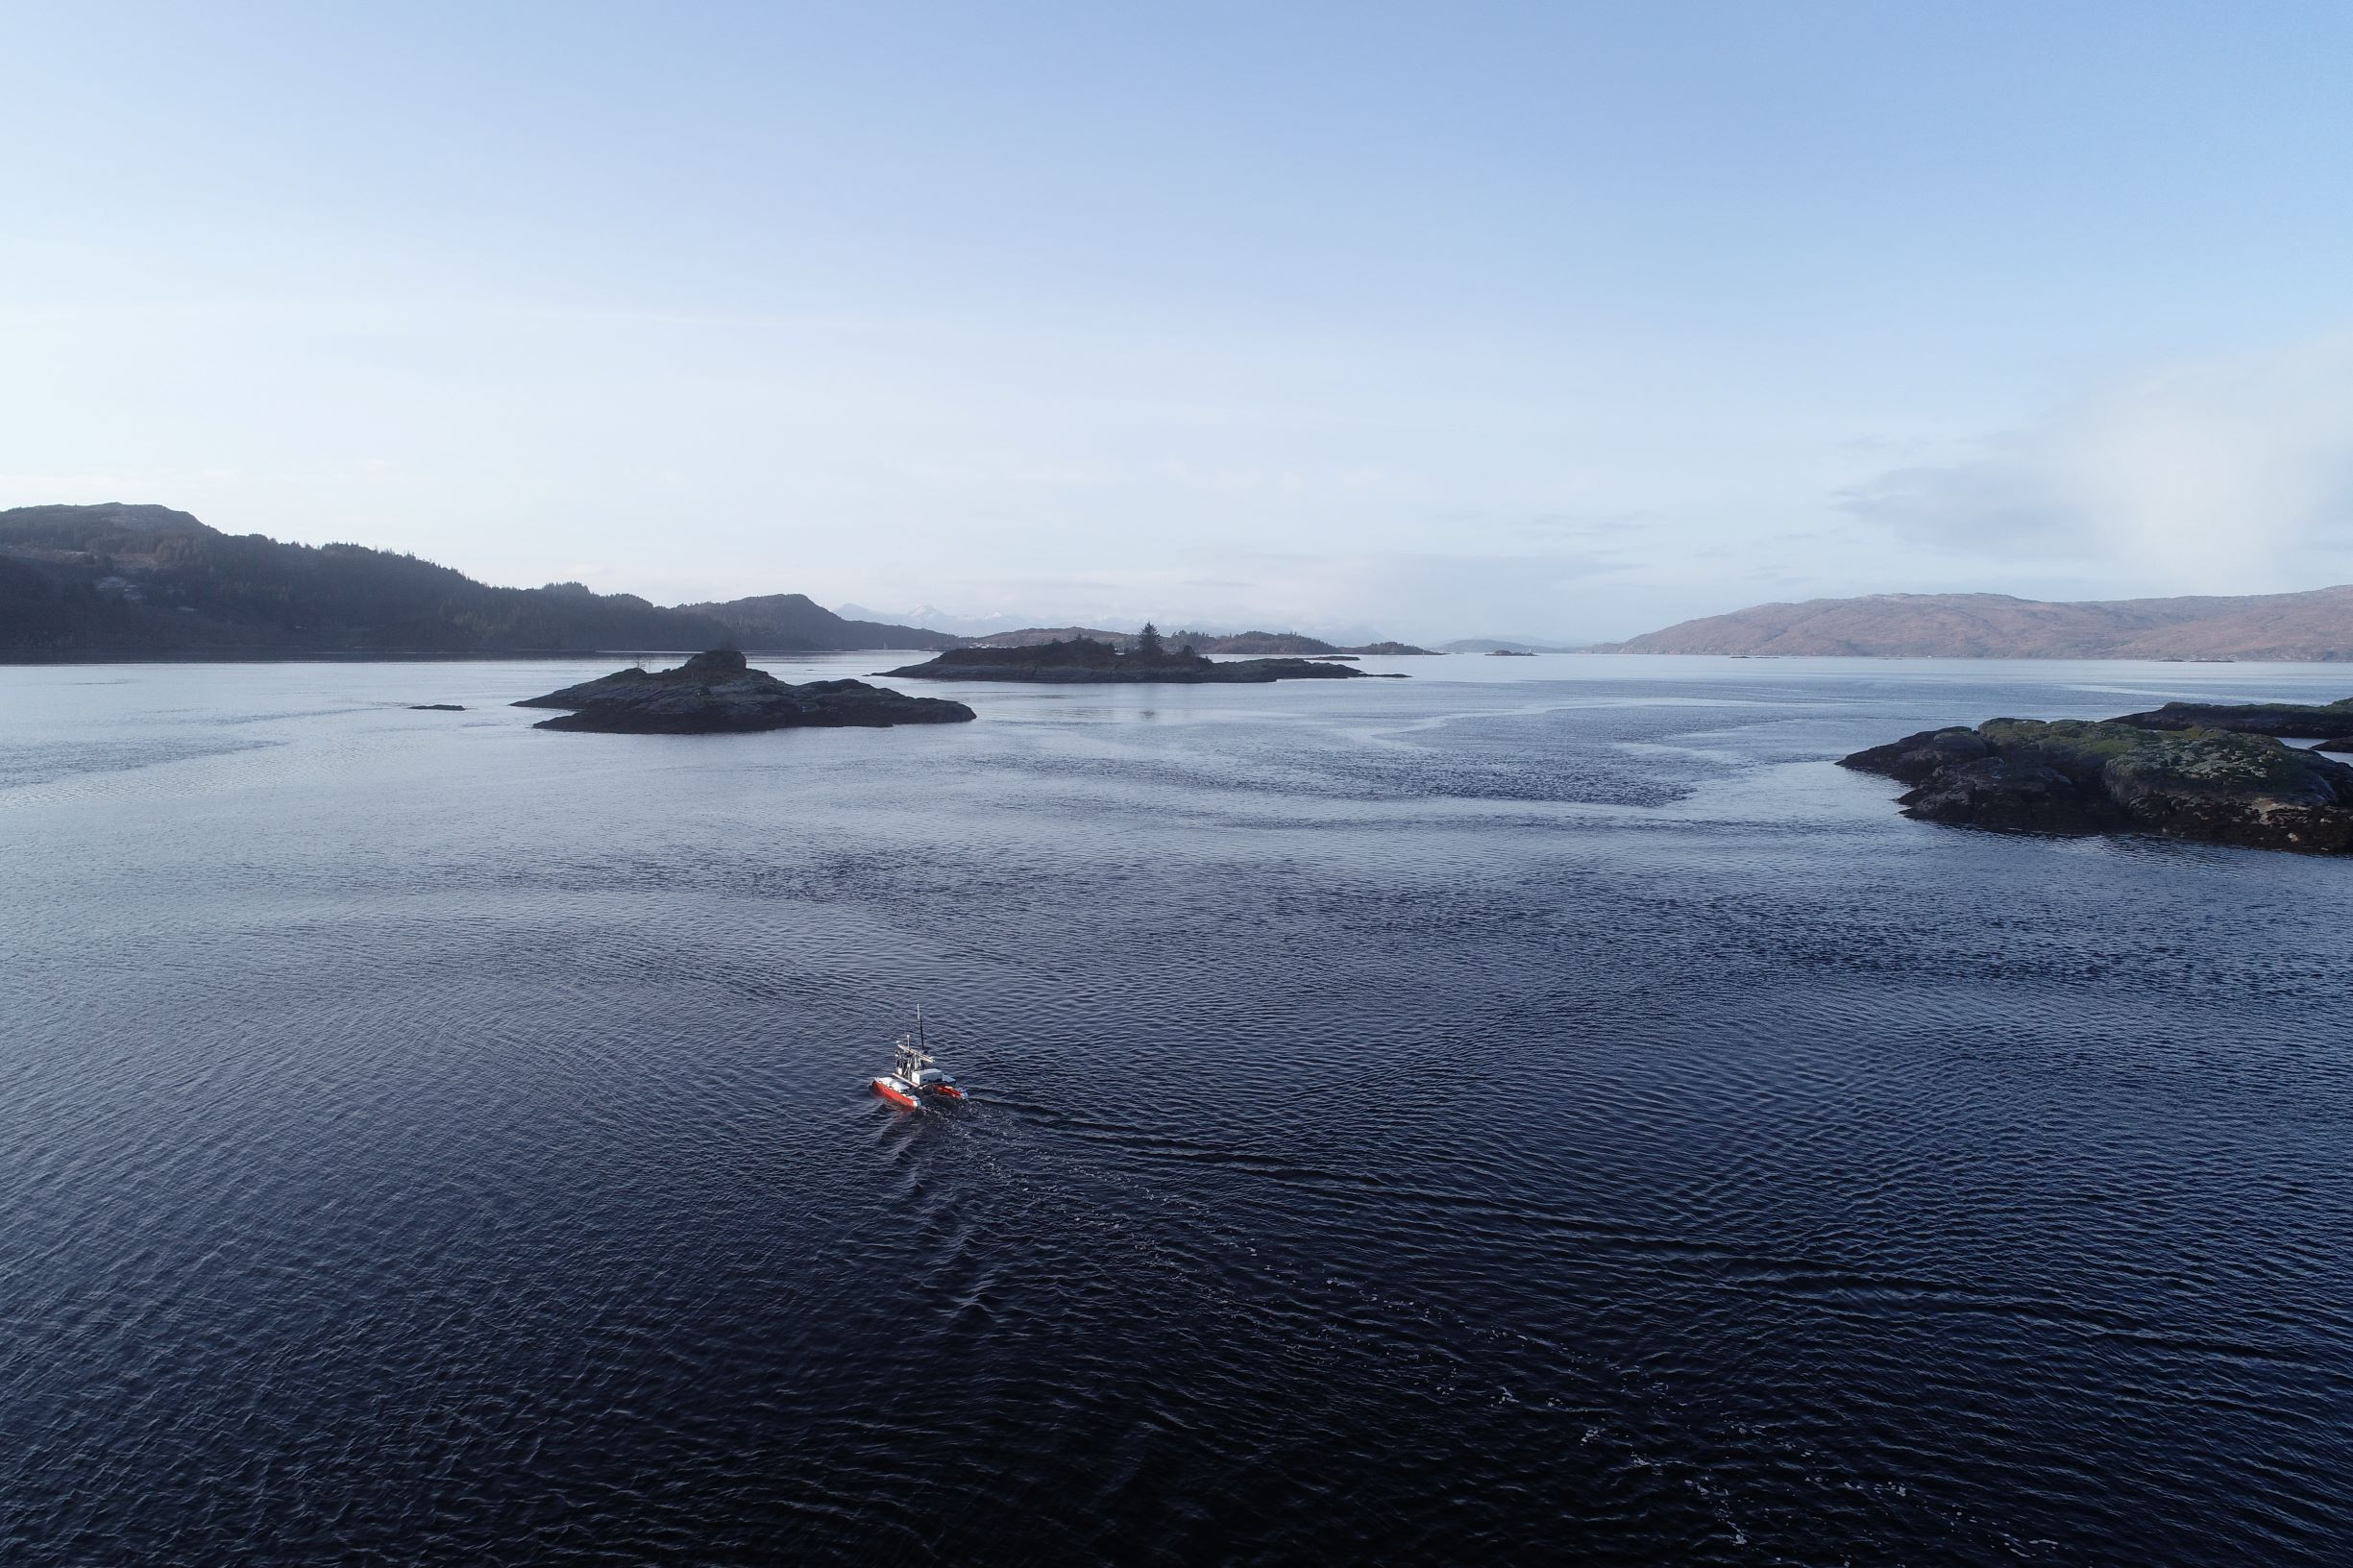 2,000 Hours of Bathymetric Survey using Unmanned Vessels for UK Civil Hydrography Programme